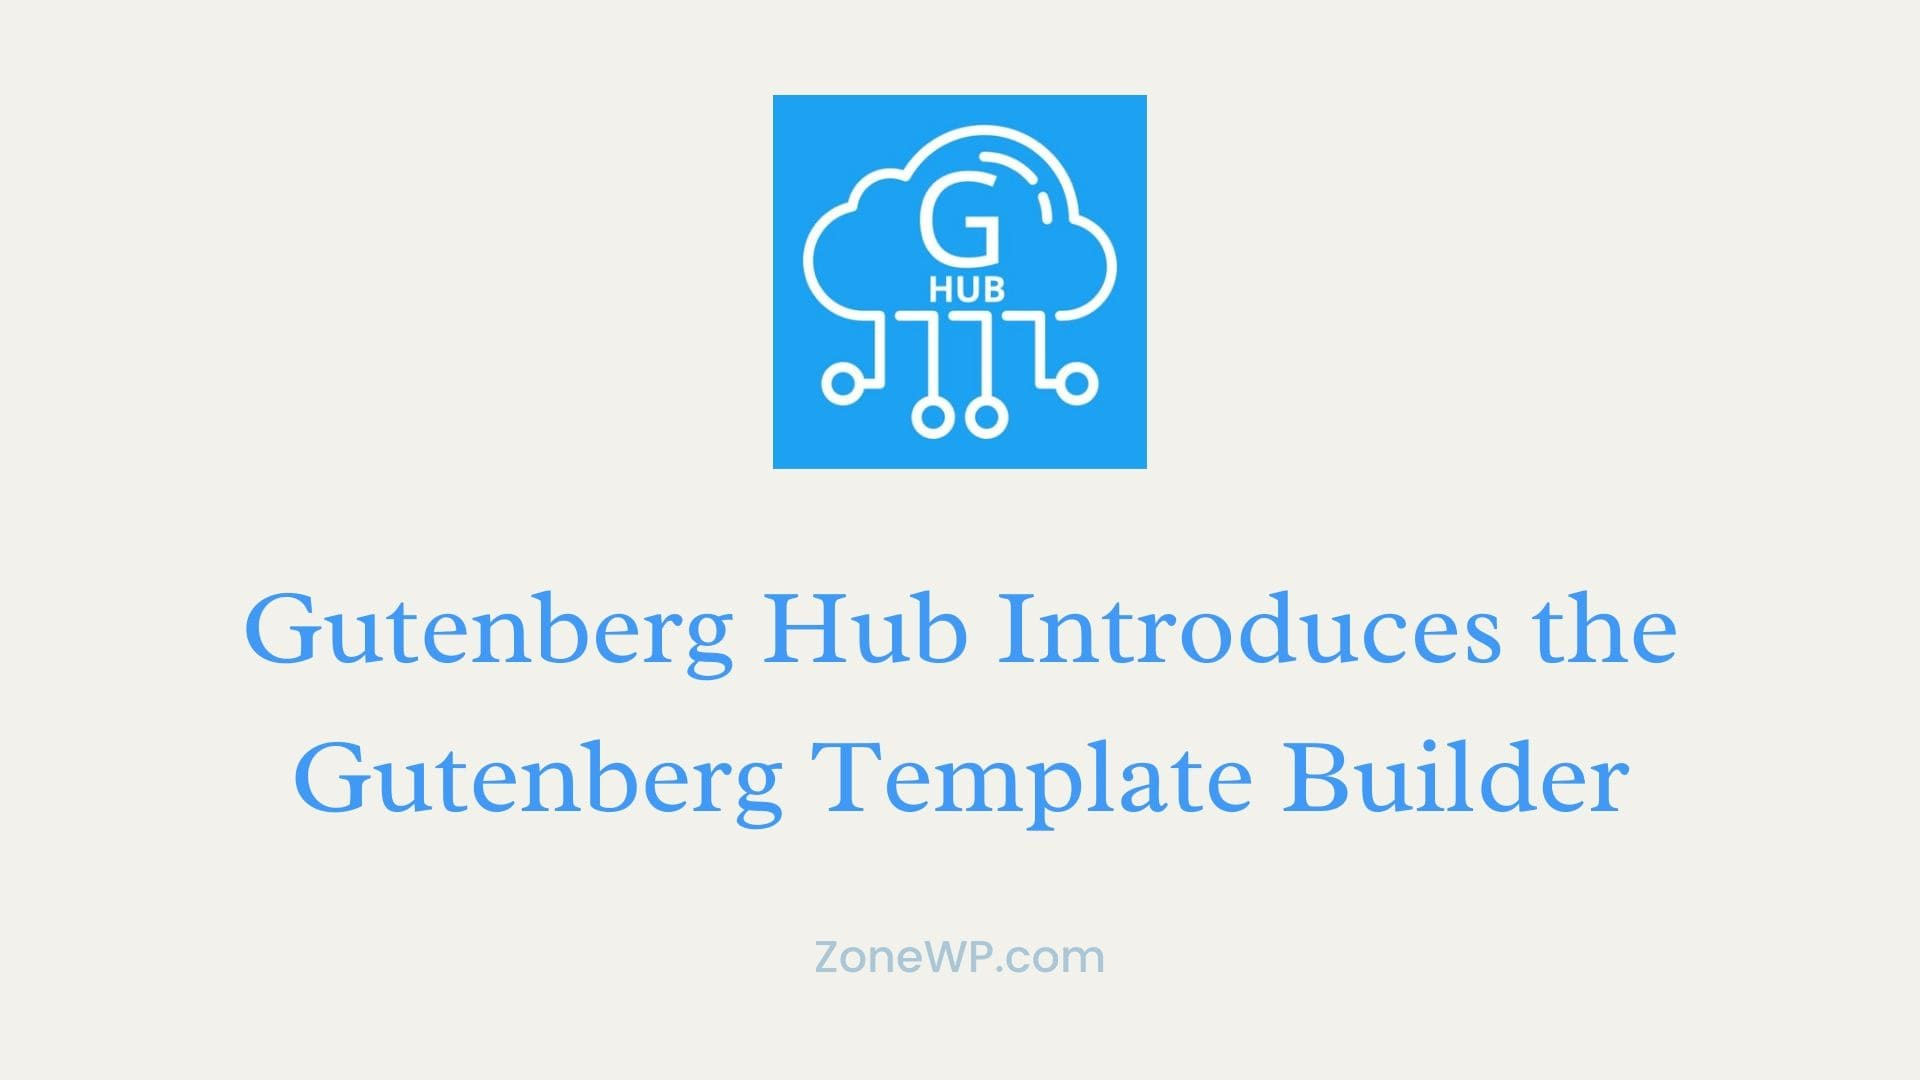 Gutenberg Hub Introduces the Gutenberg Template Builder